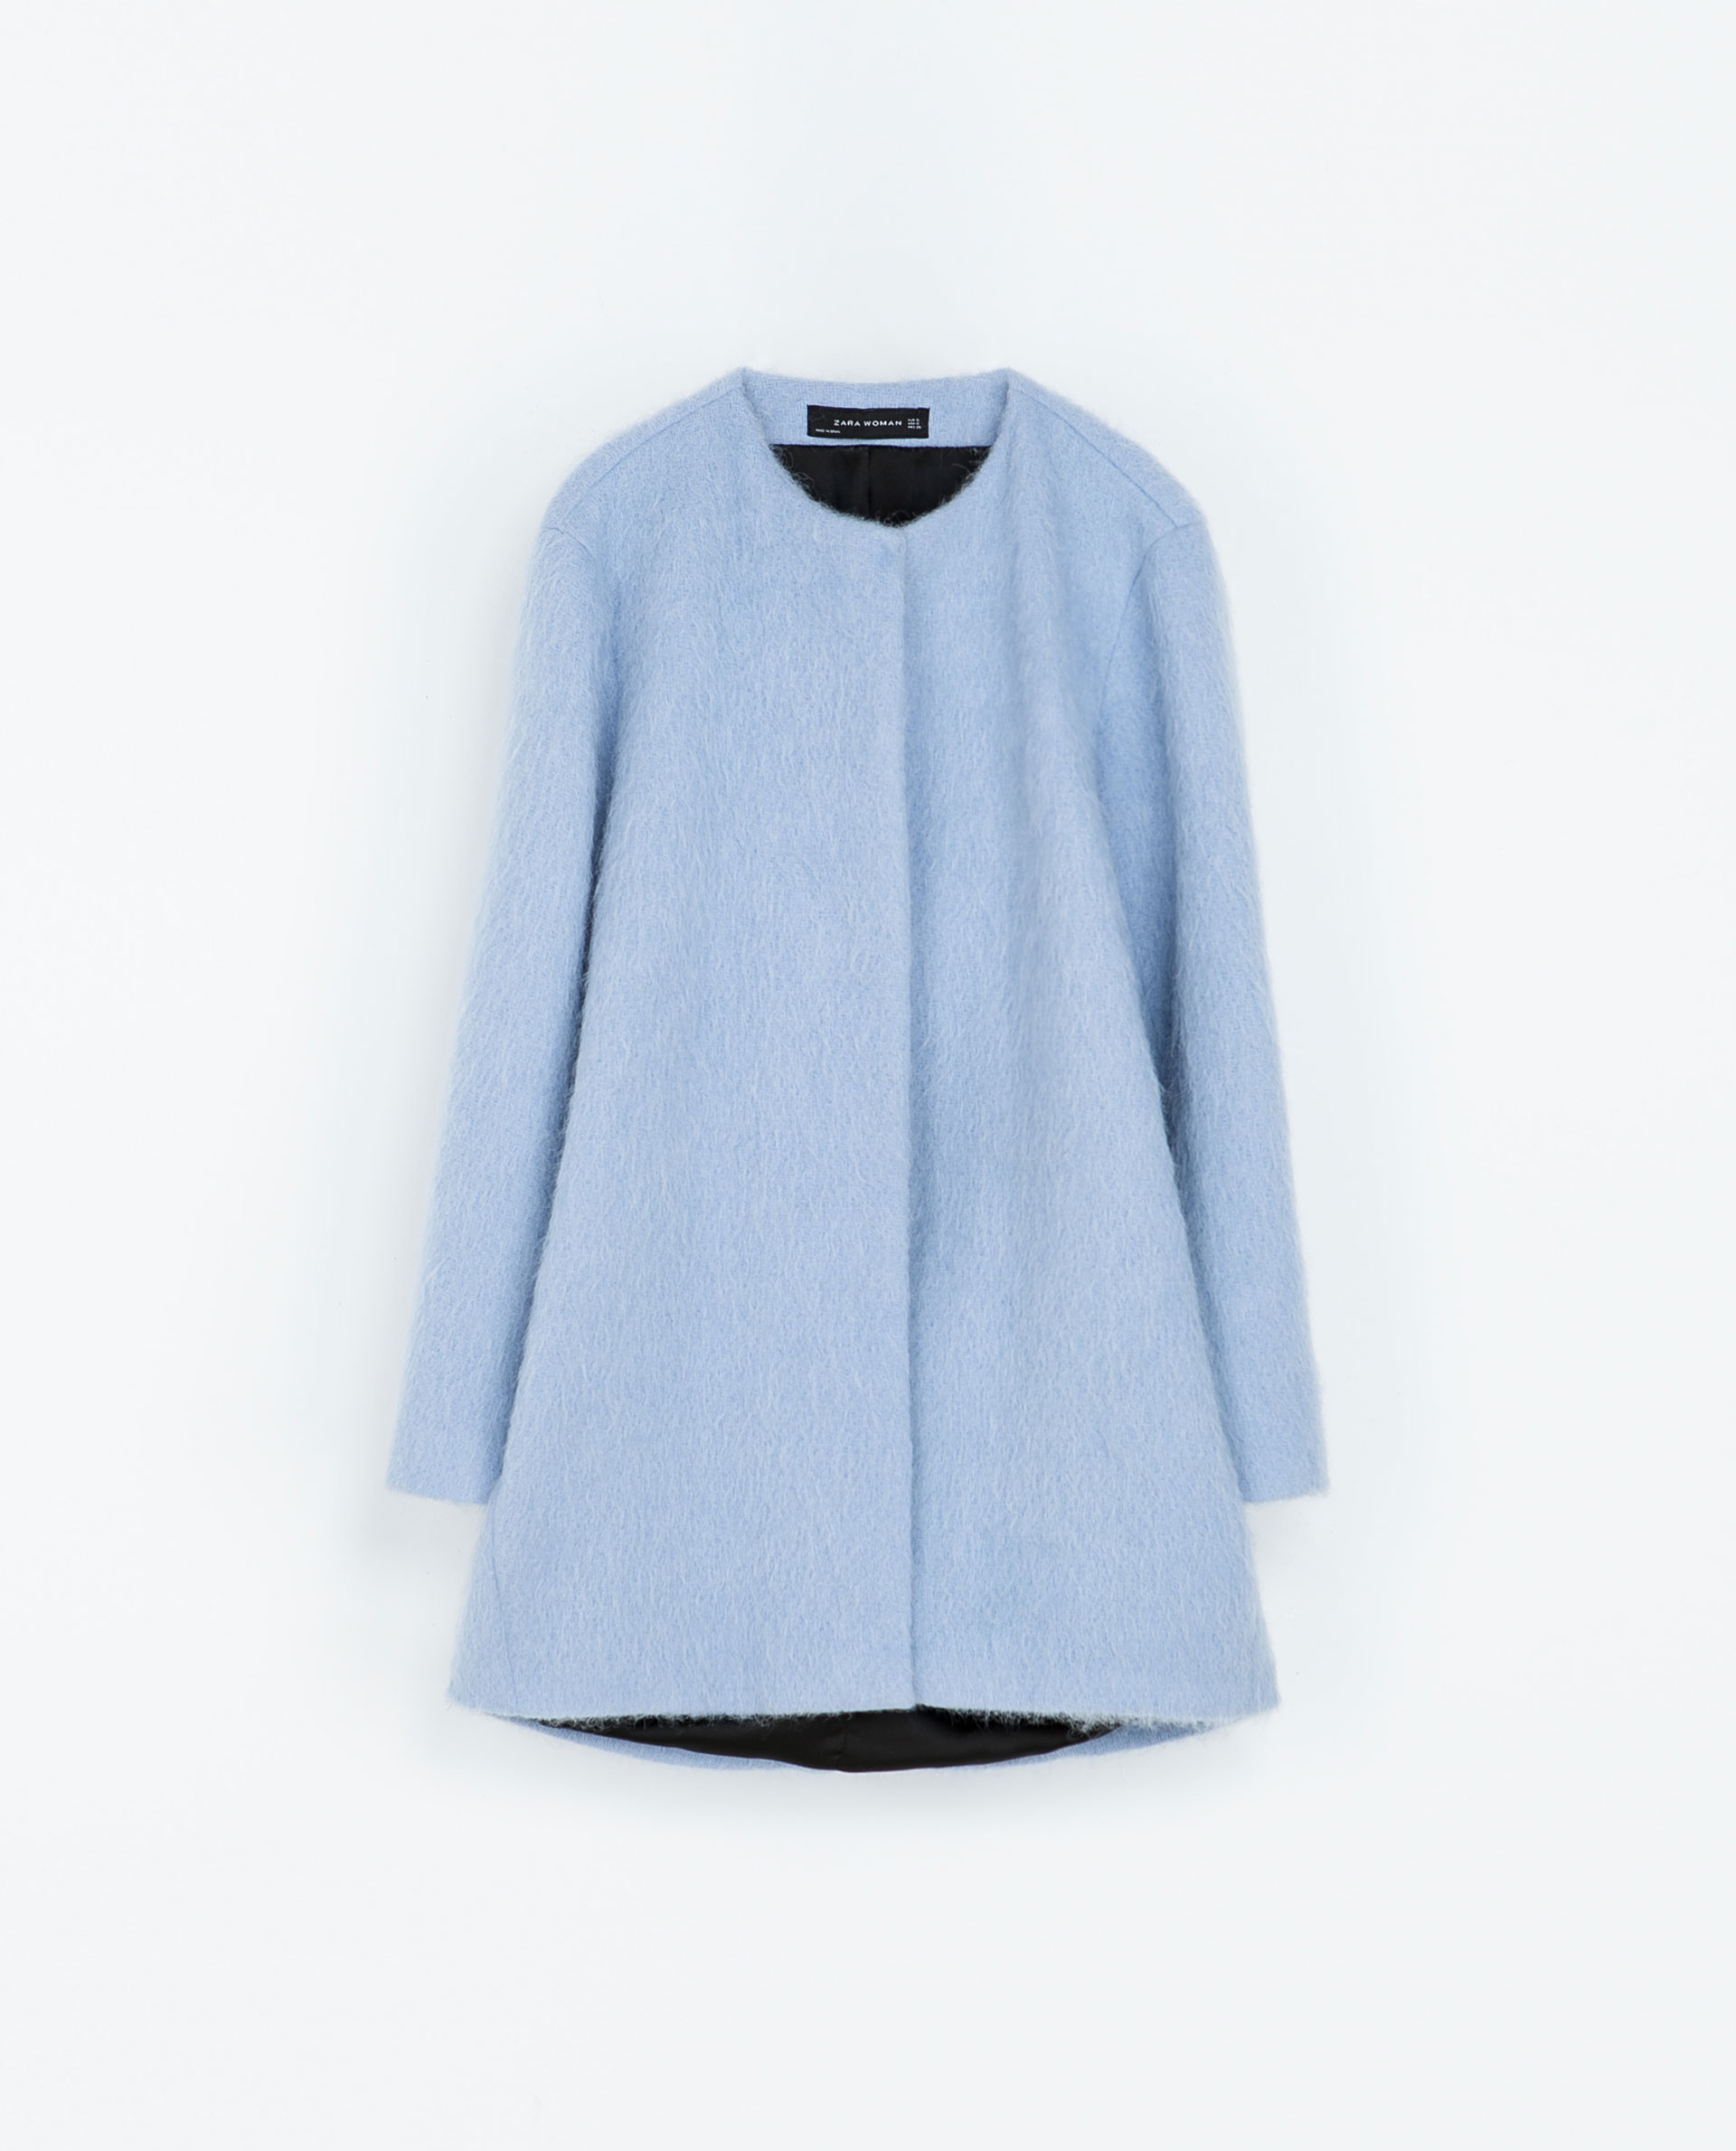 Daisybutter - UK Style and Fashion Blog: Zara blue mohair coat